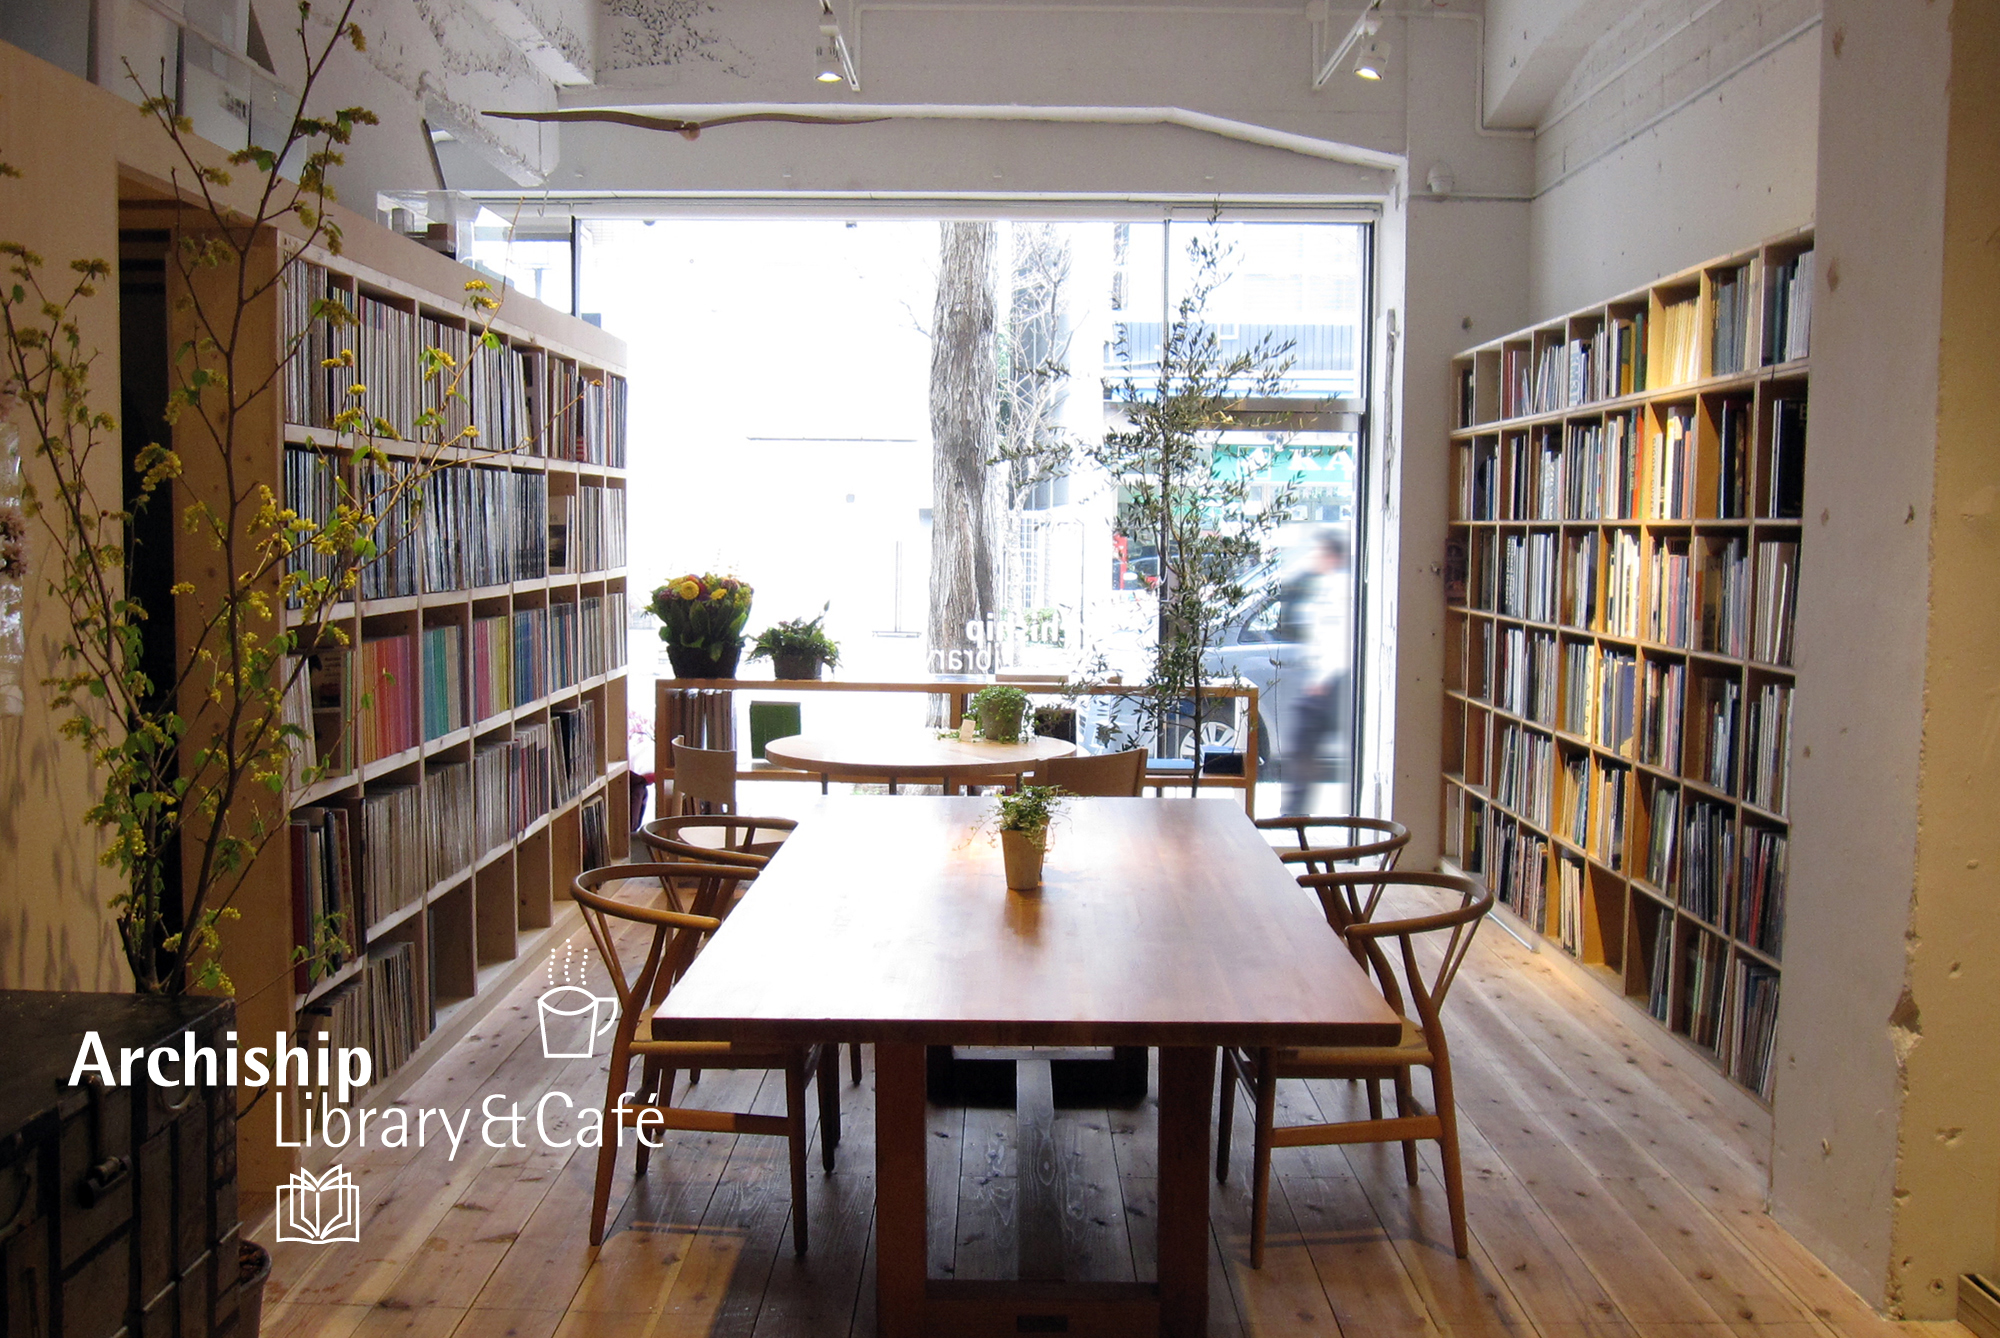 Archiship Library&Cafe